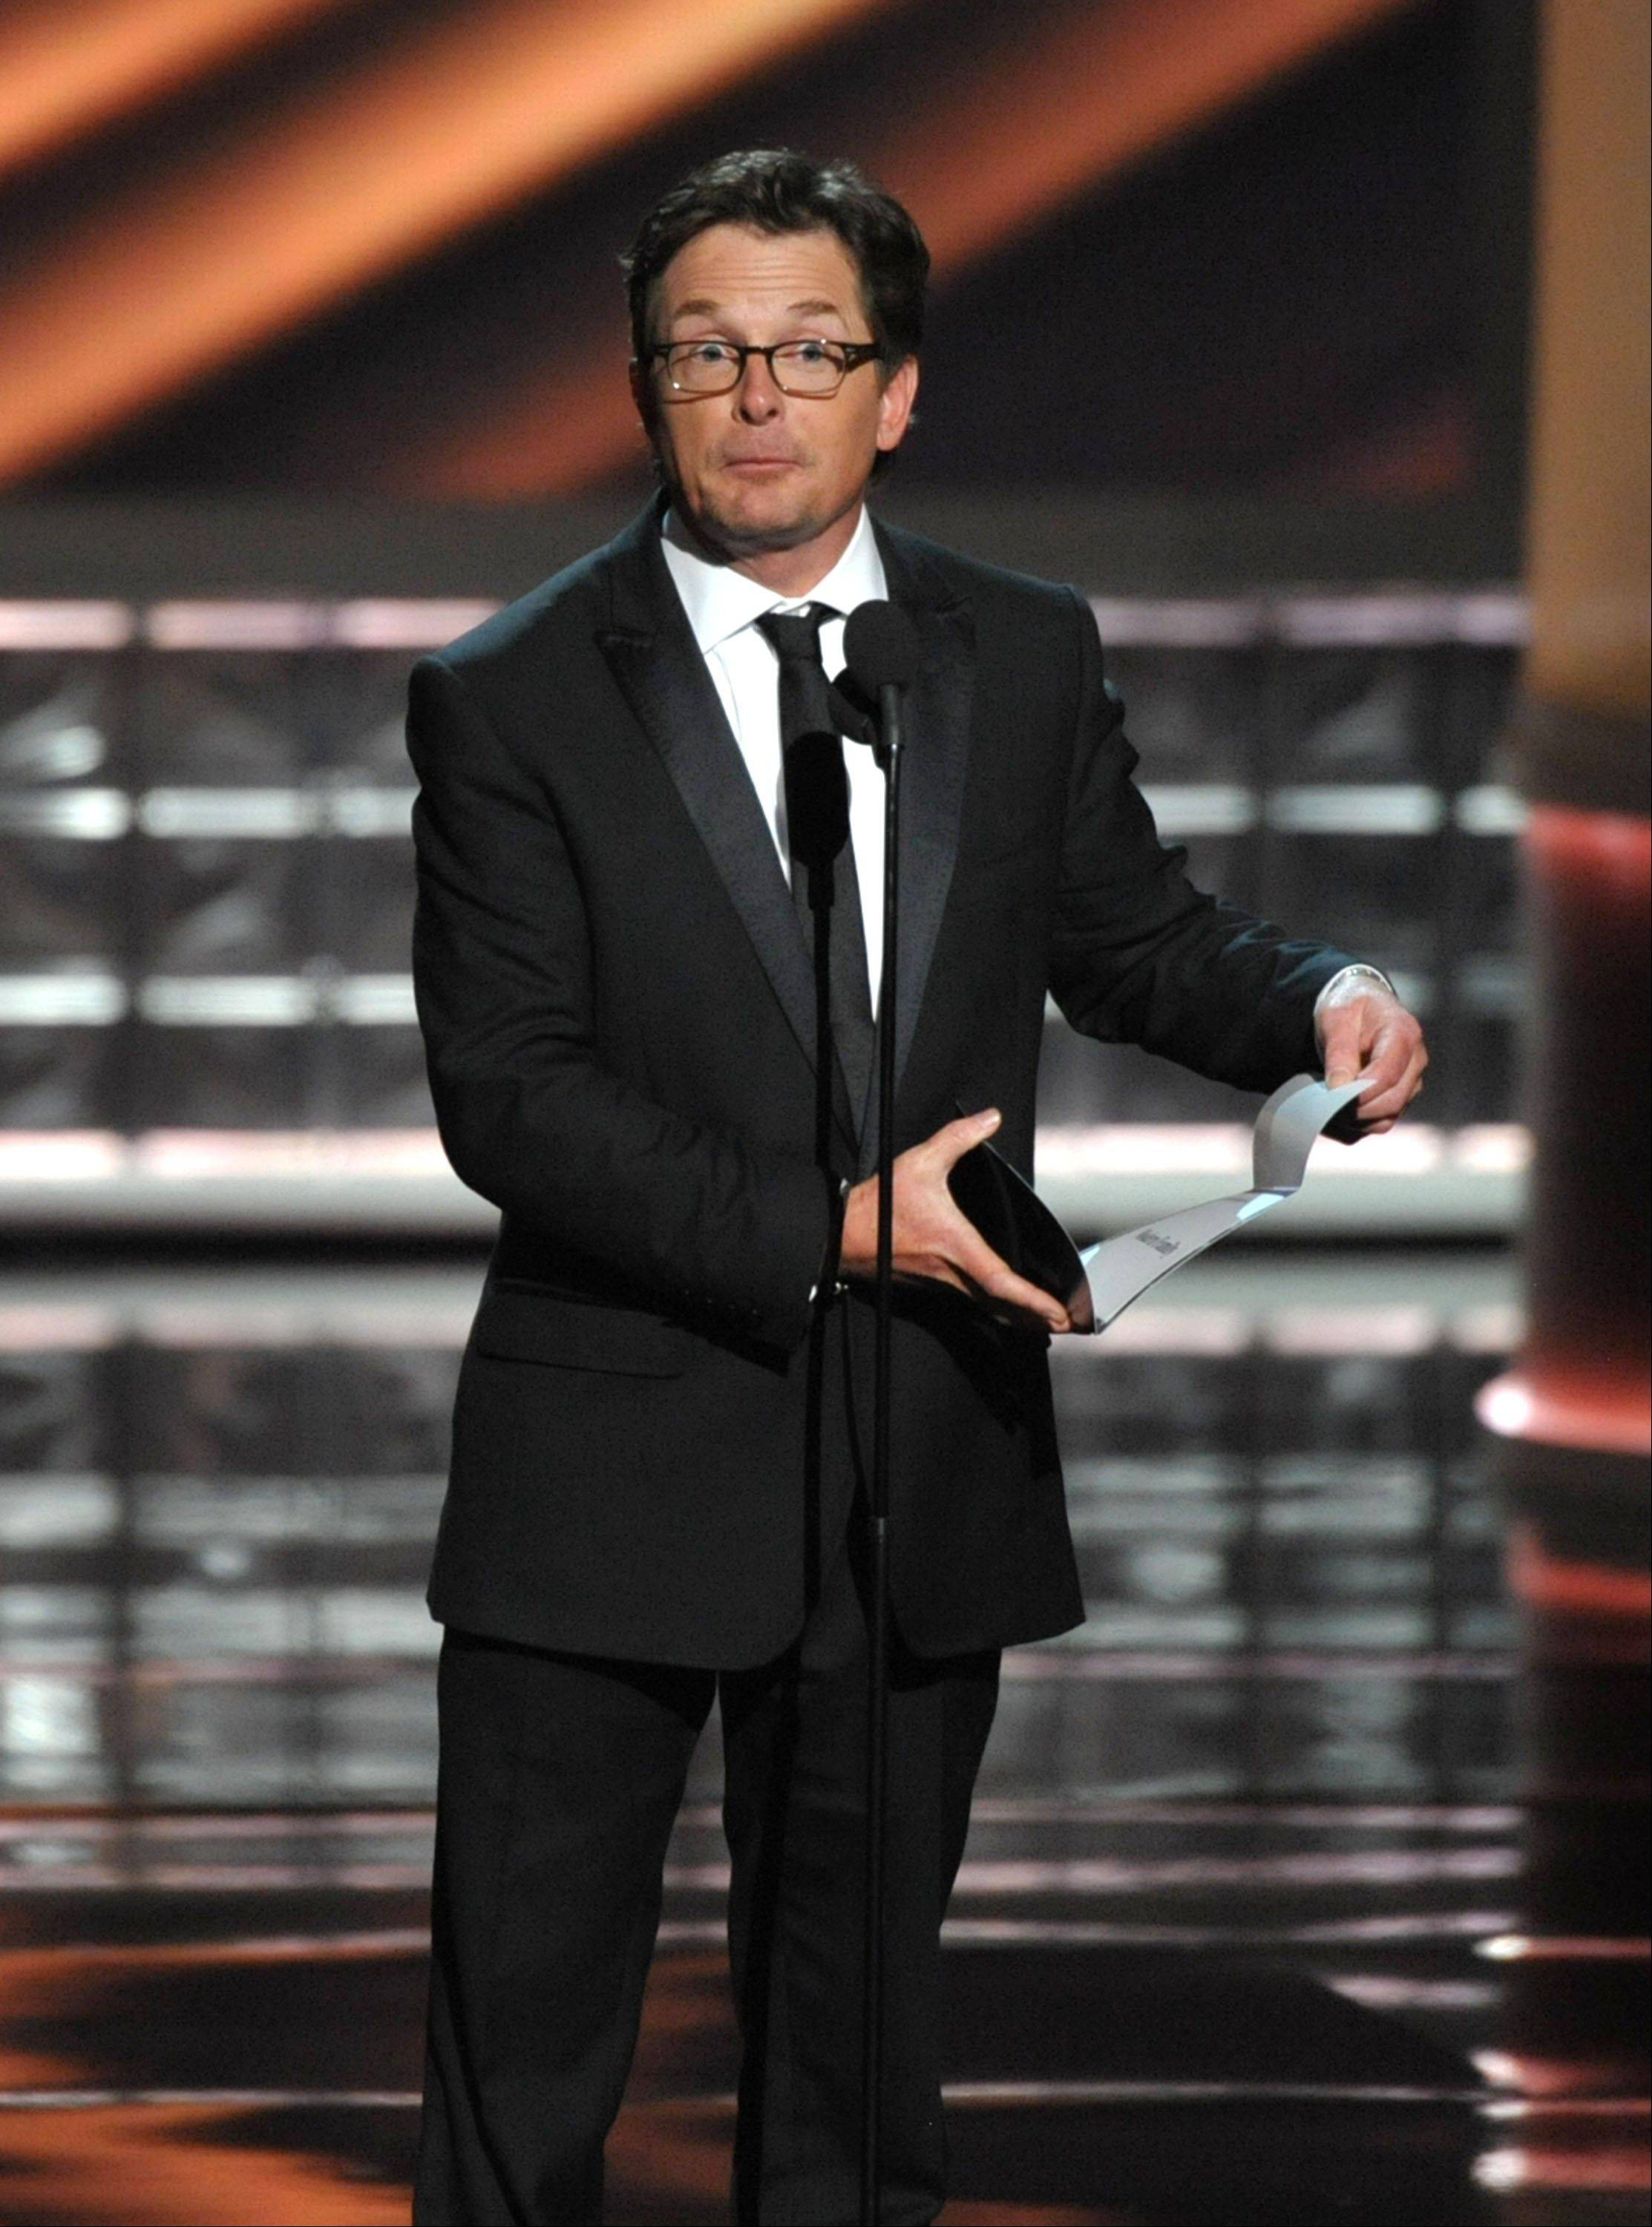 Michael J. Fox presents an award.